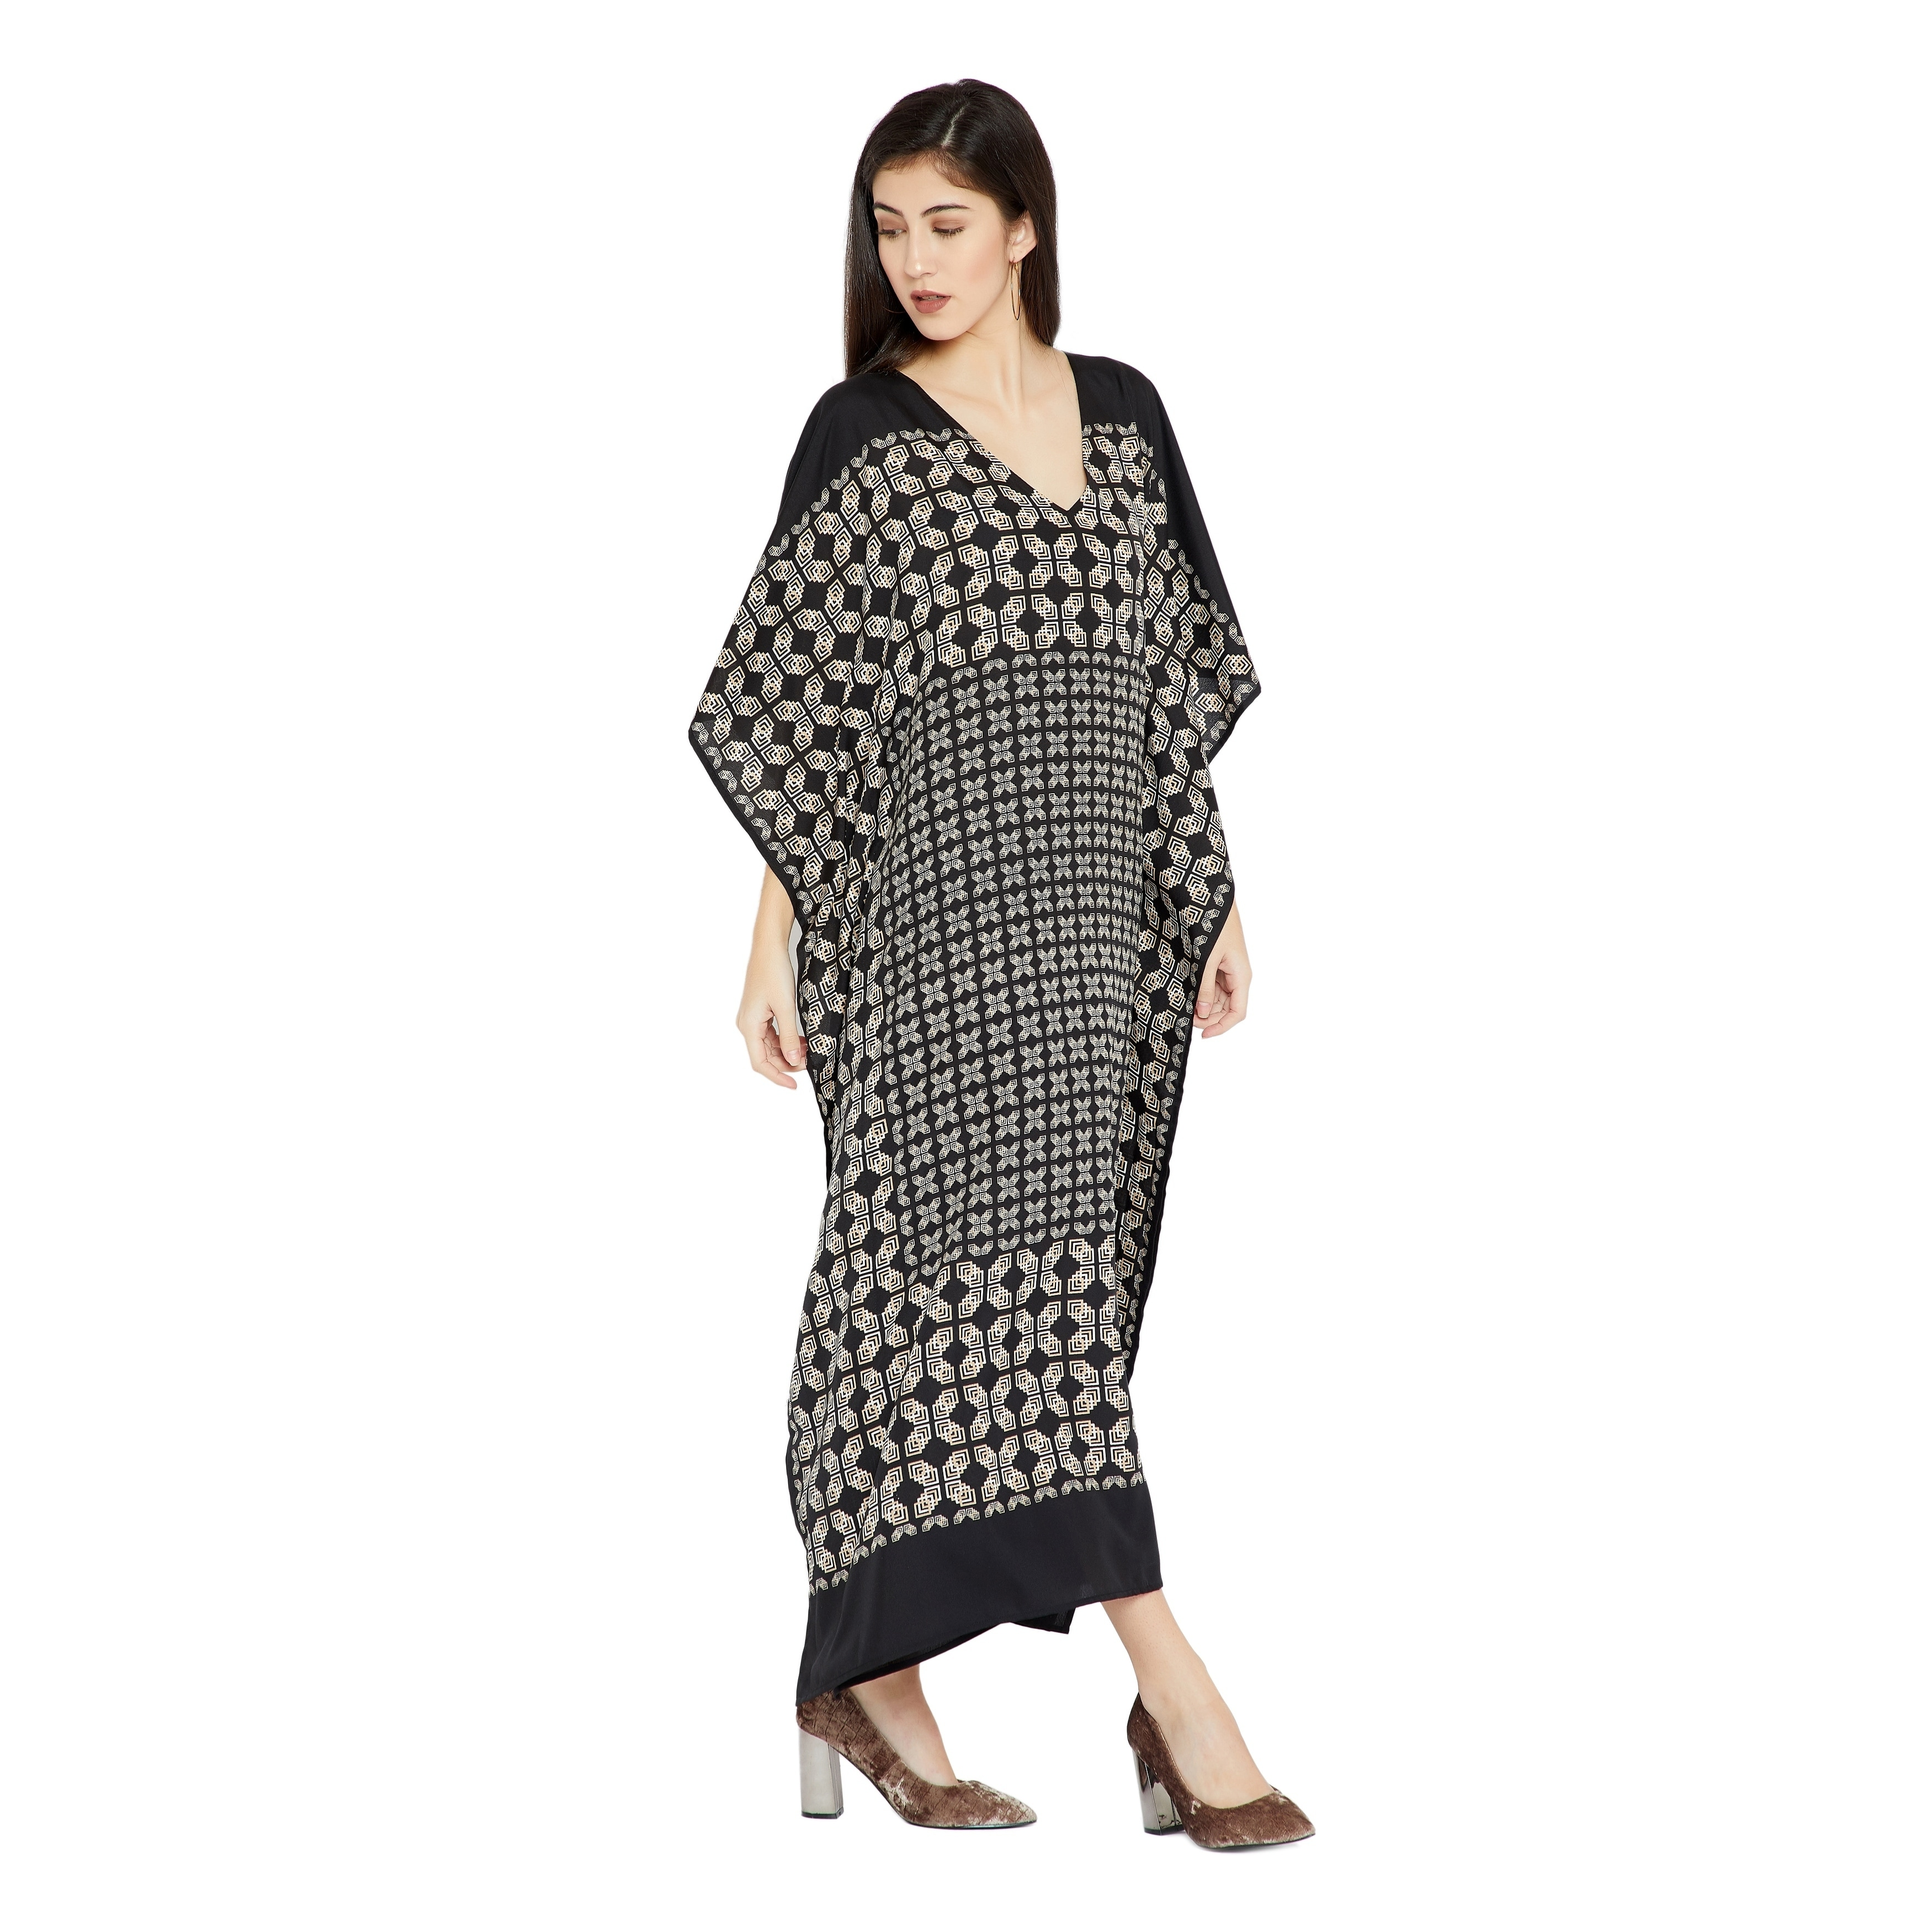 07339c31d5 Shop Black Caftan Women Geometric PlusSize Kaftan Dress Maxi Casual Evening  - Free Shipping On Orders Over $45 - Overstock - 23578541